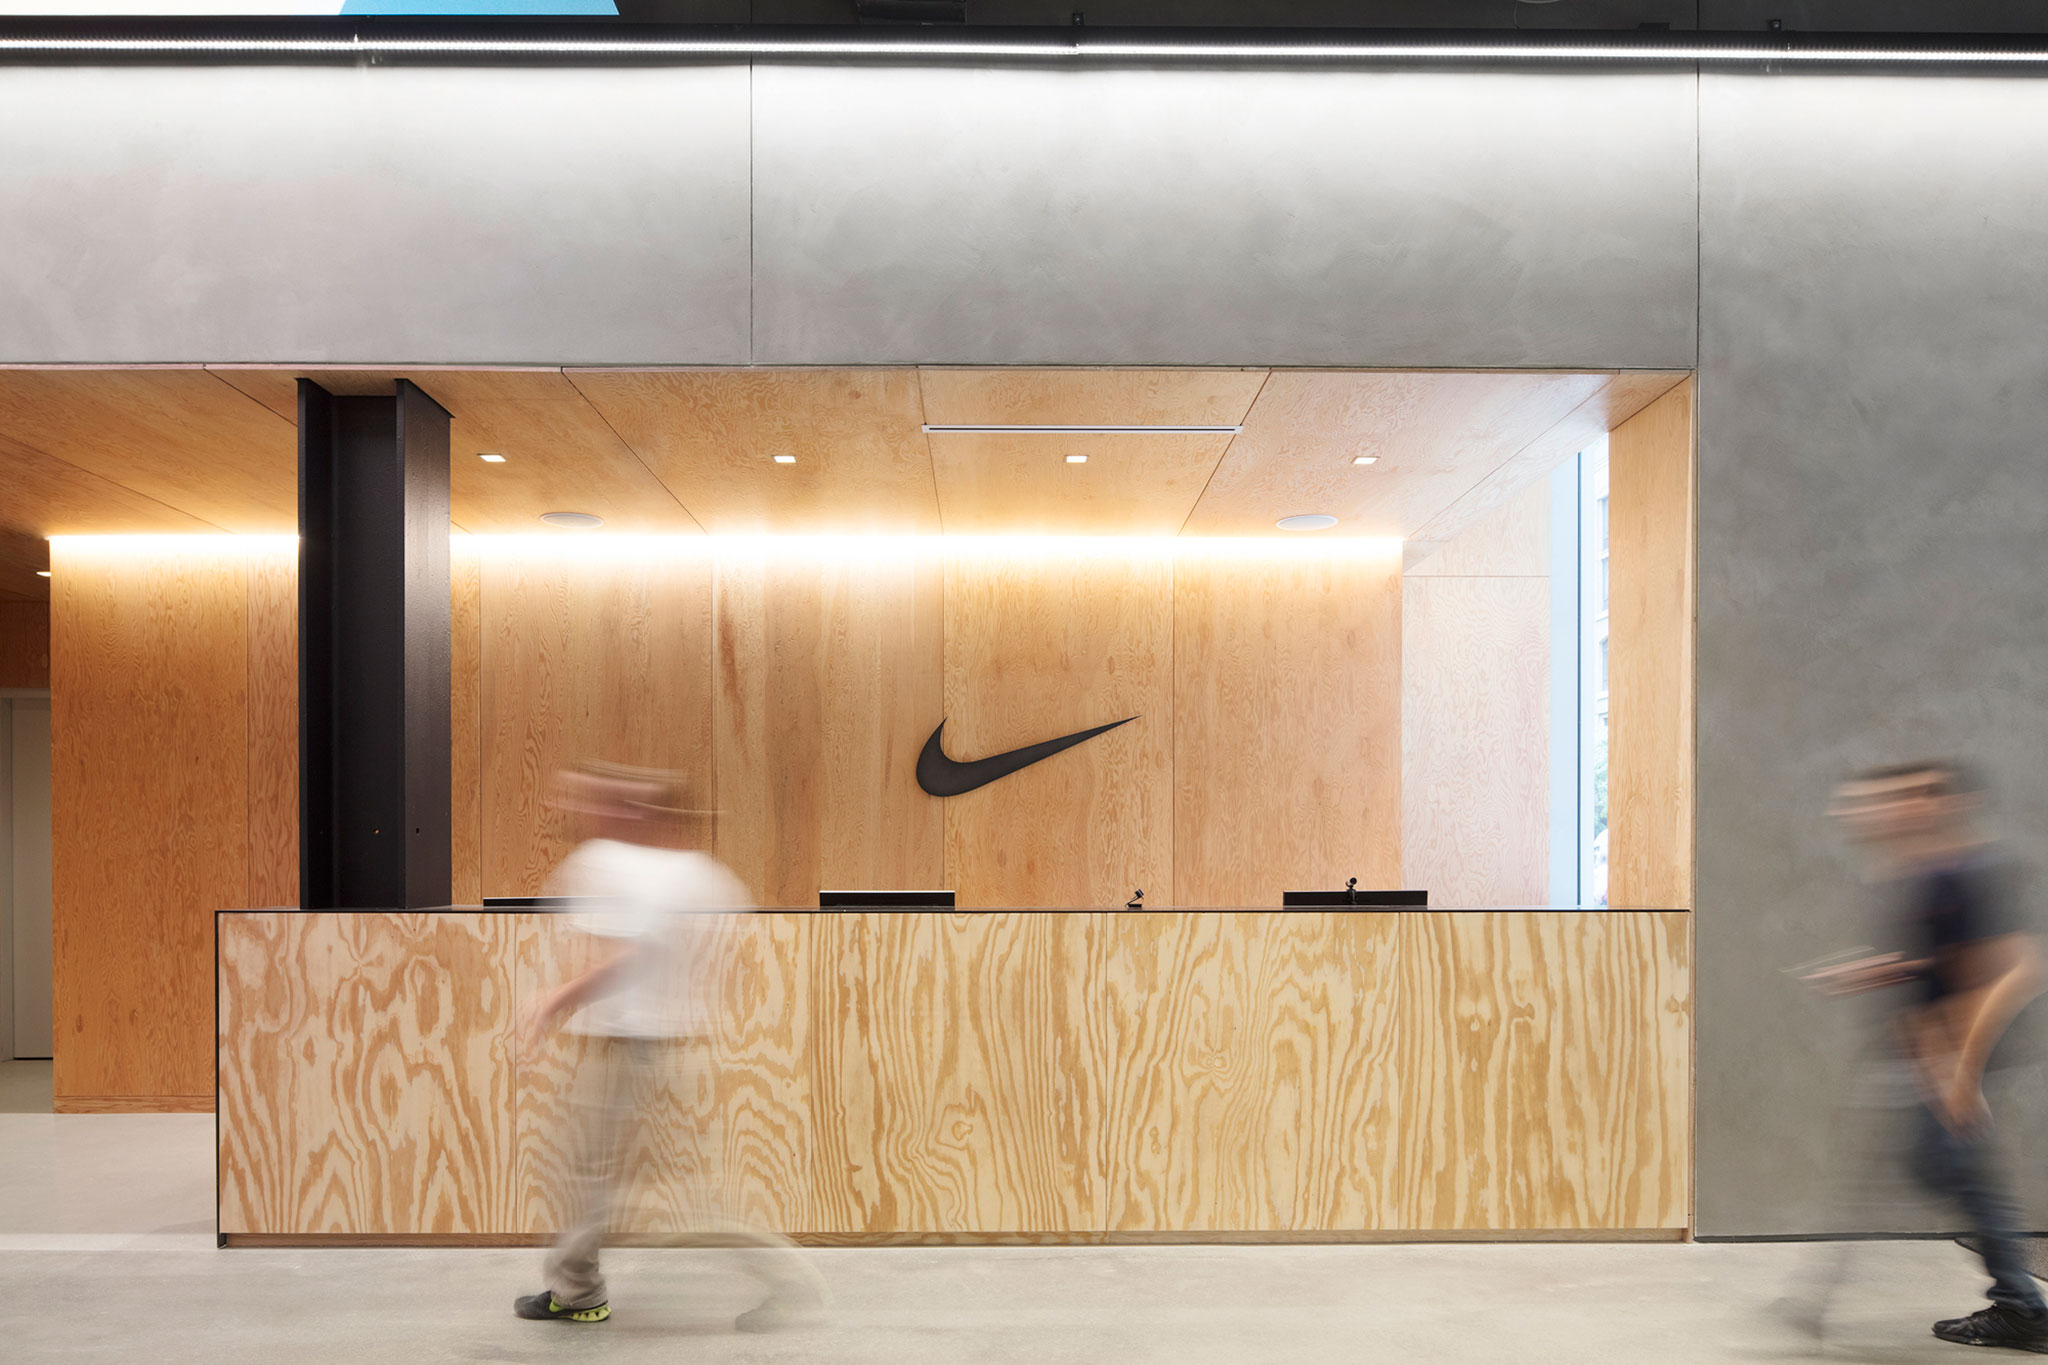 brand architecture of nike The ultimate goal of any company is to lessen the gapbetween the perceived and the required brand image through actively gettingfeedback from the market and responding to any trendsnike brand image that the company initially was building is a pure american icon, highperformance, innovative aggressive brand, associated with high notch athletes.